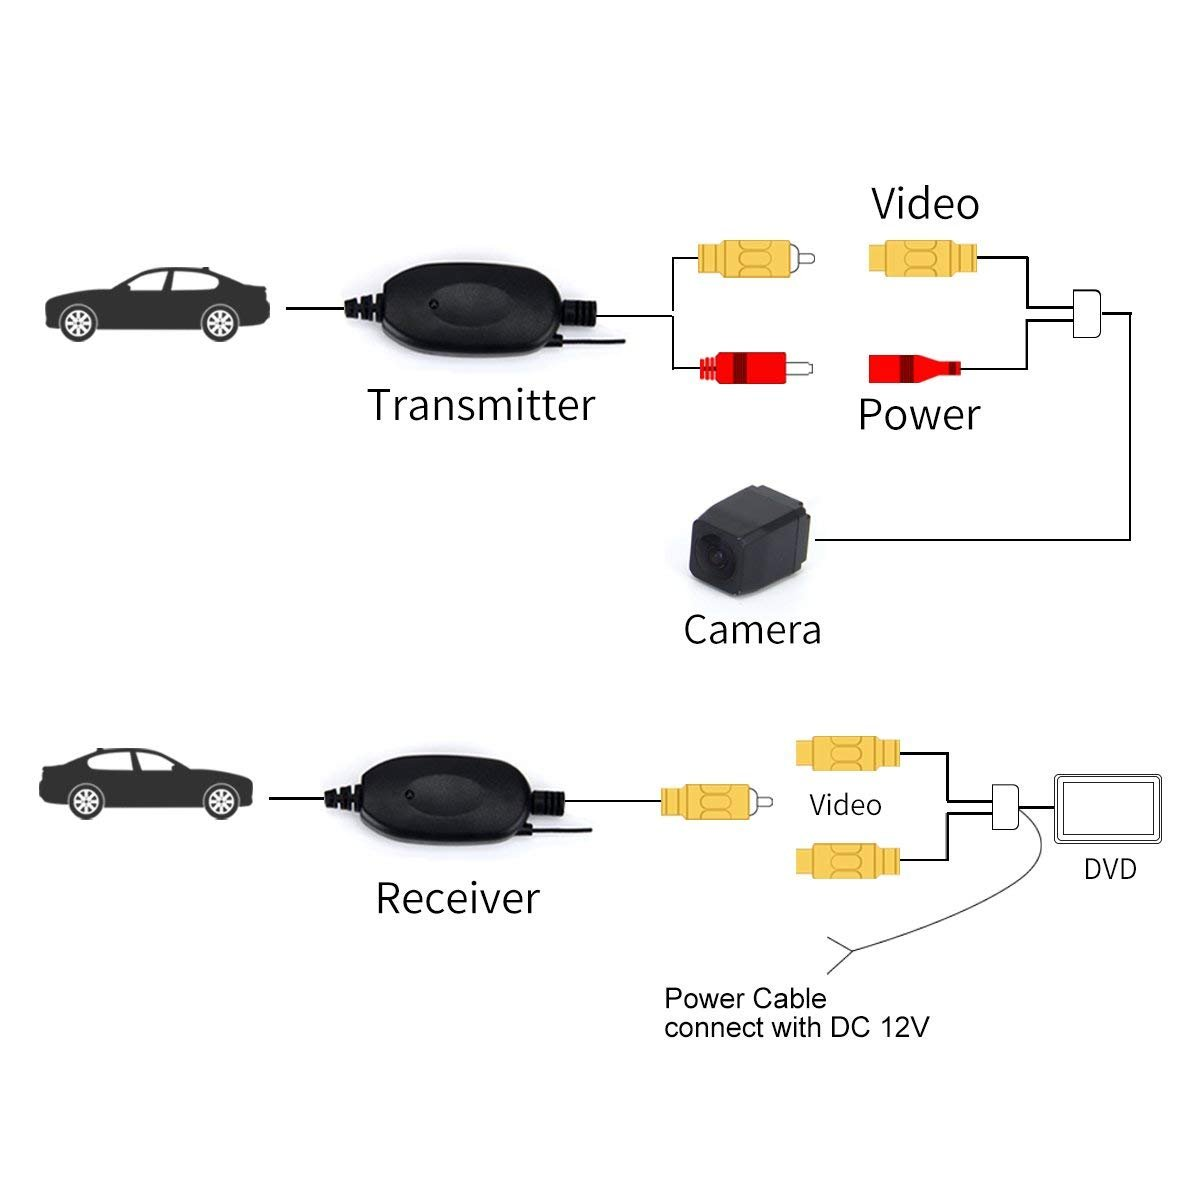 Dasaita New rear view camera 2.4G Wireless Color Video Transmitter and Receiver for The Vehicle Backup Camera Front Car Camera Only Fit with the Radio with Canbus WX001-1